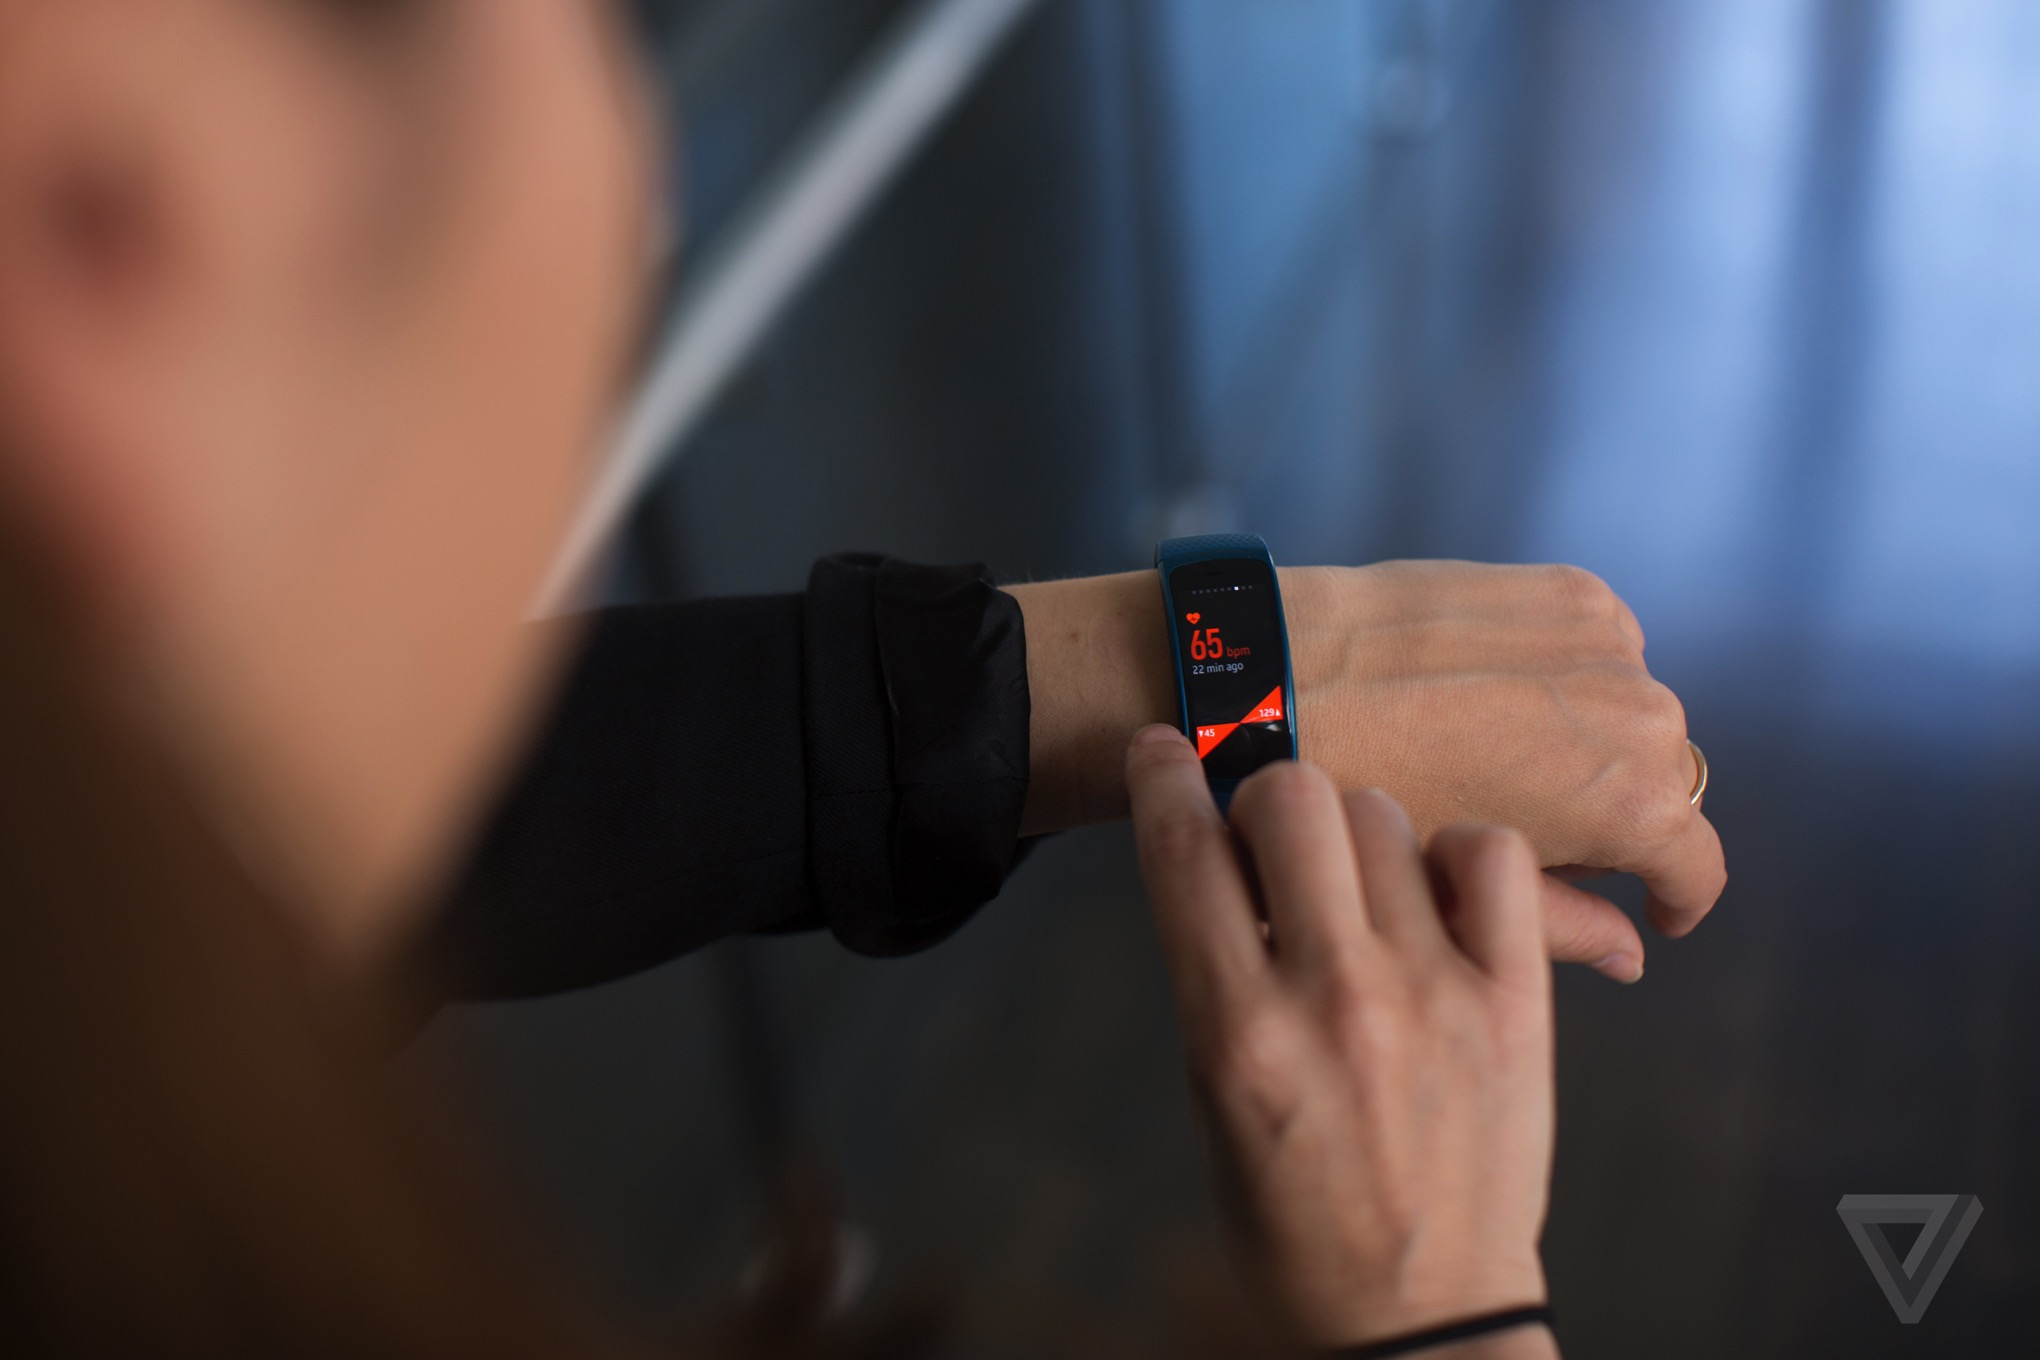 Samsung gear fit 2 gear iconx hands on putting fitness at the top - Samsung Gear Fit 2 2016 Activity Tracker